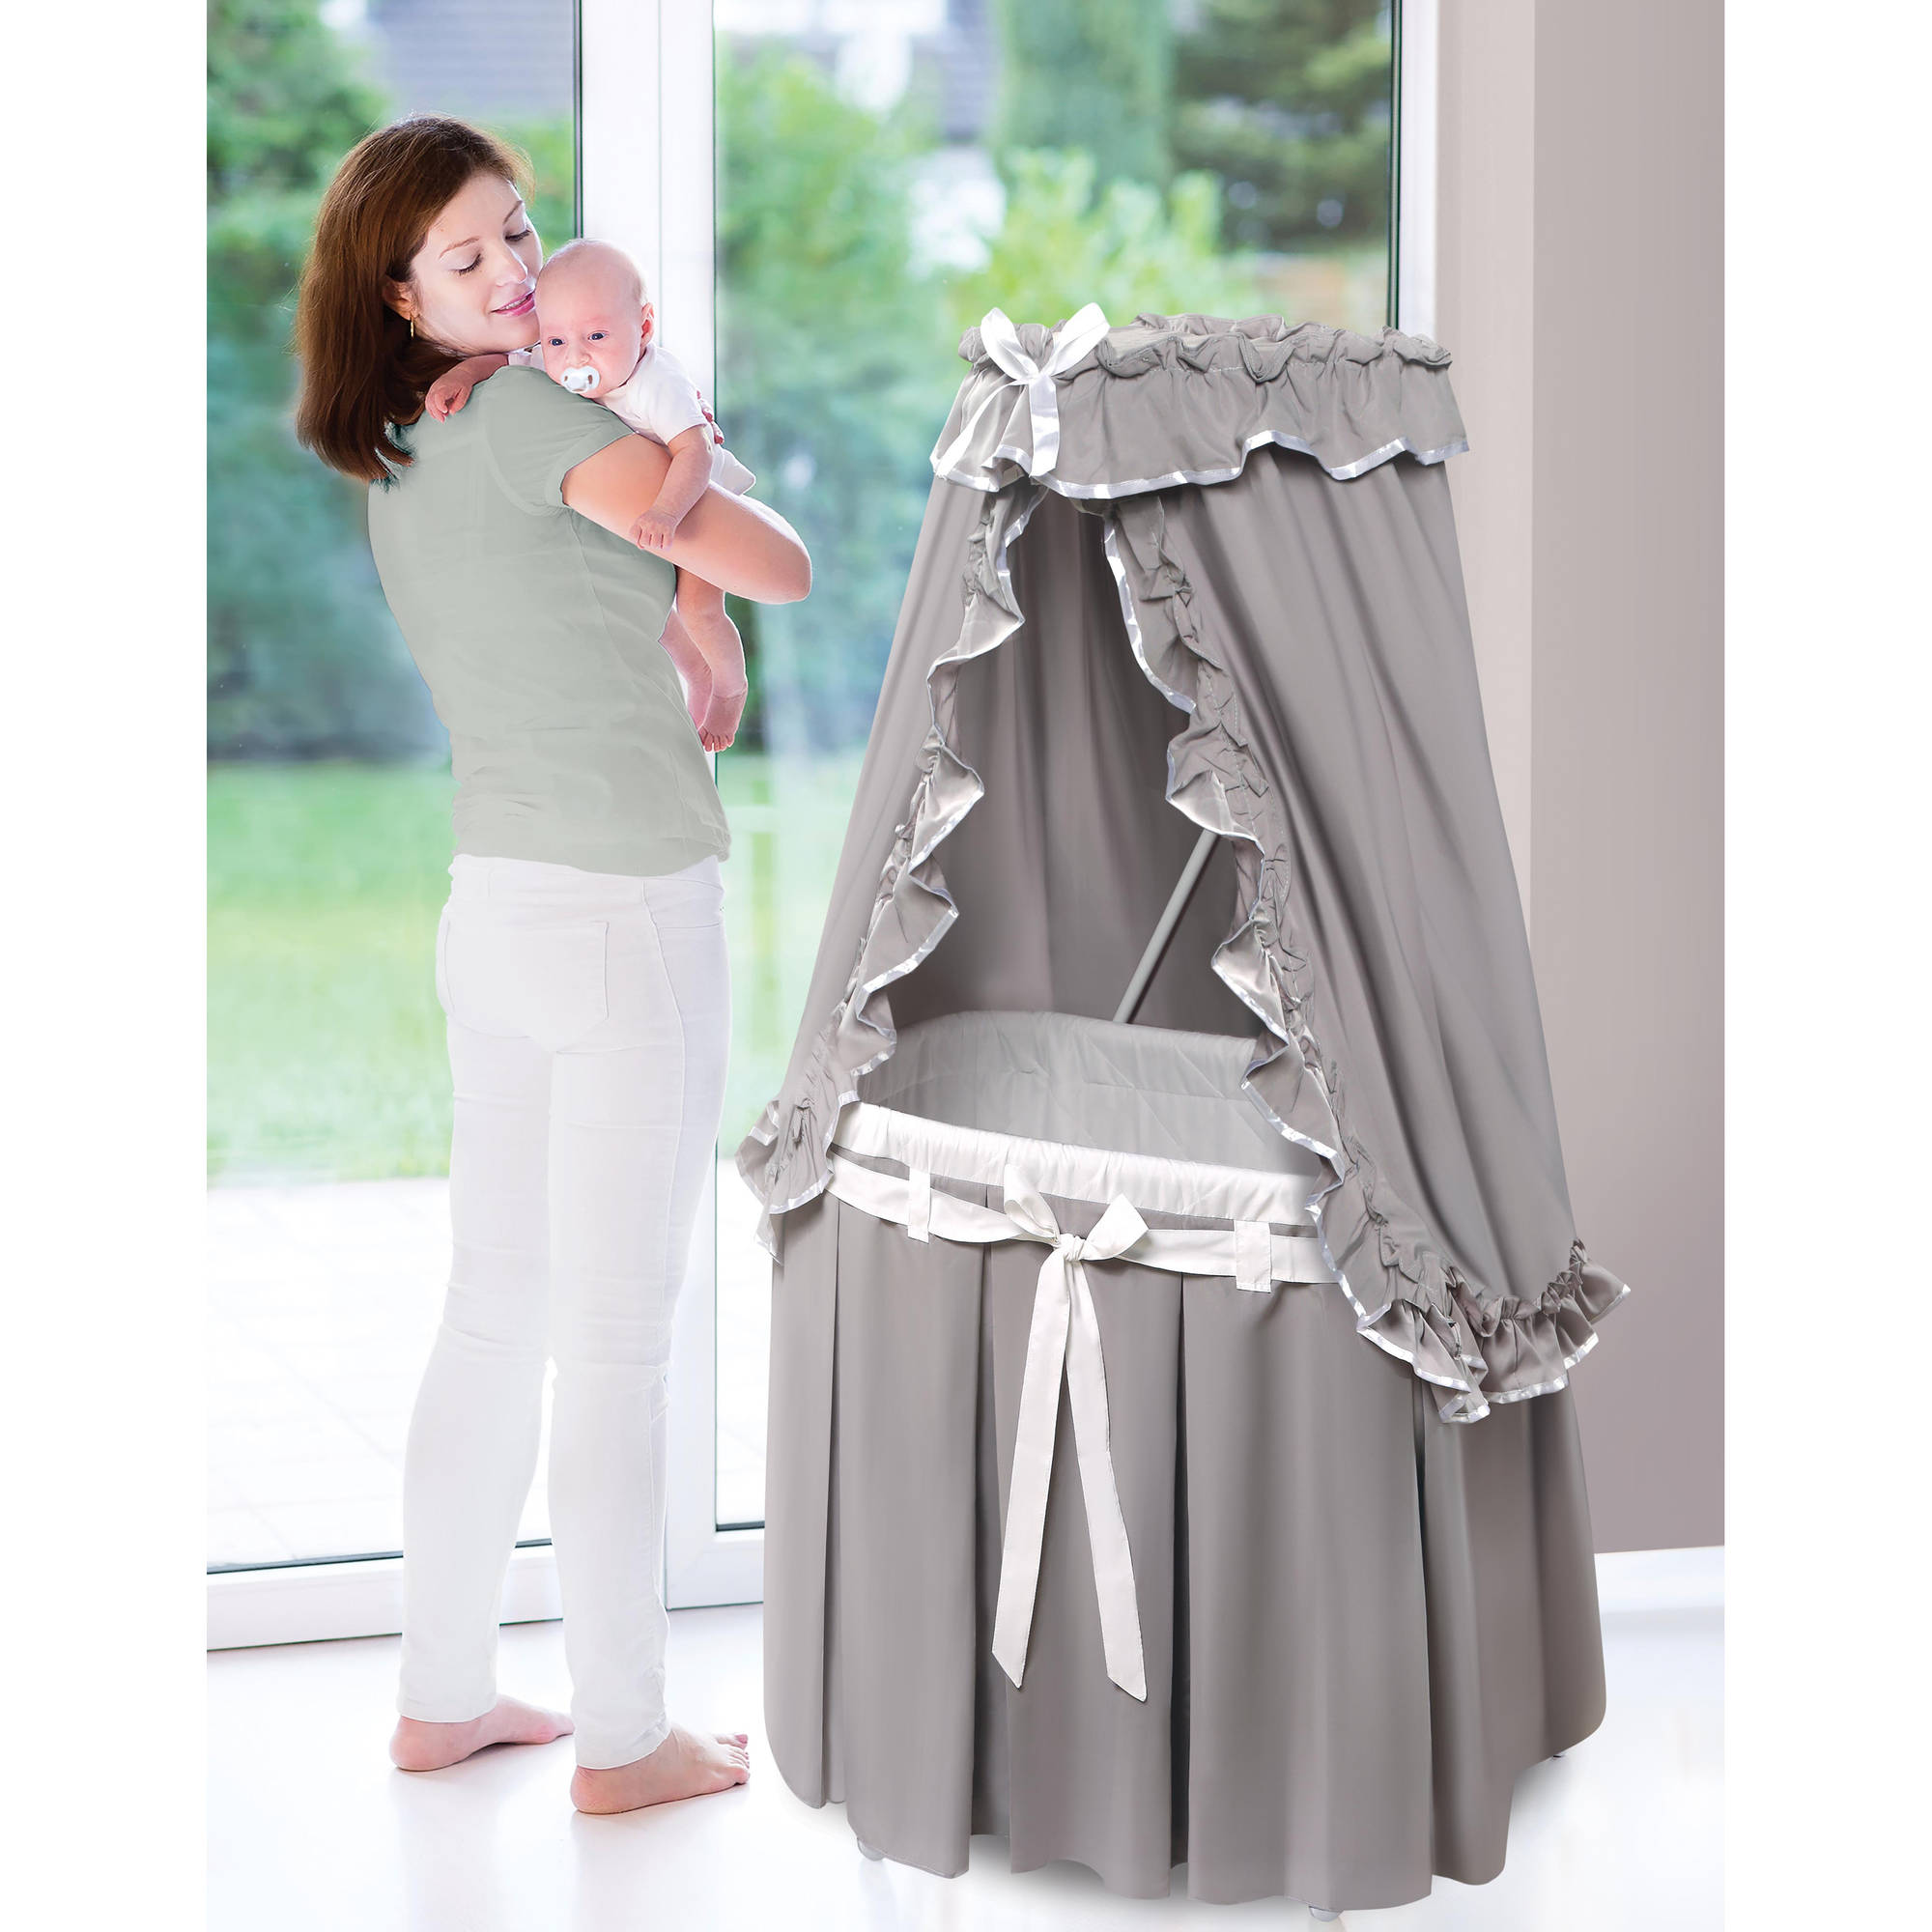 Badger Basket Majesty Baby Bassinet with Canopy, Gray and White Bedding